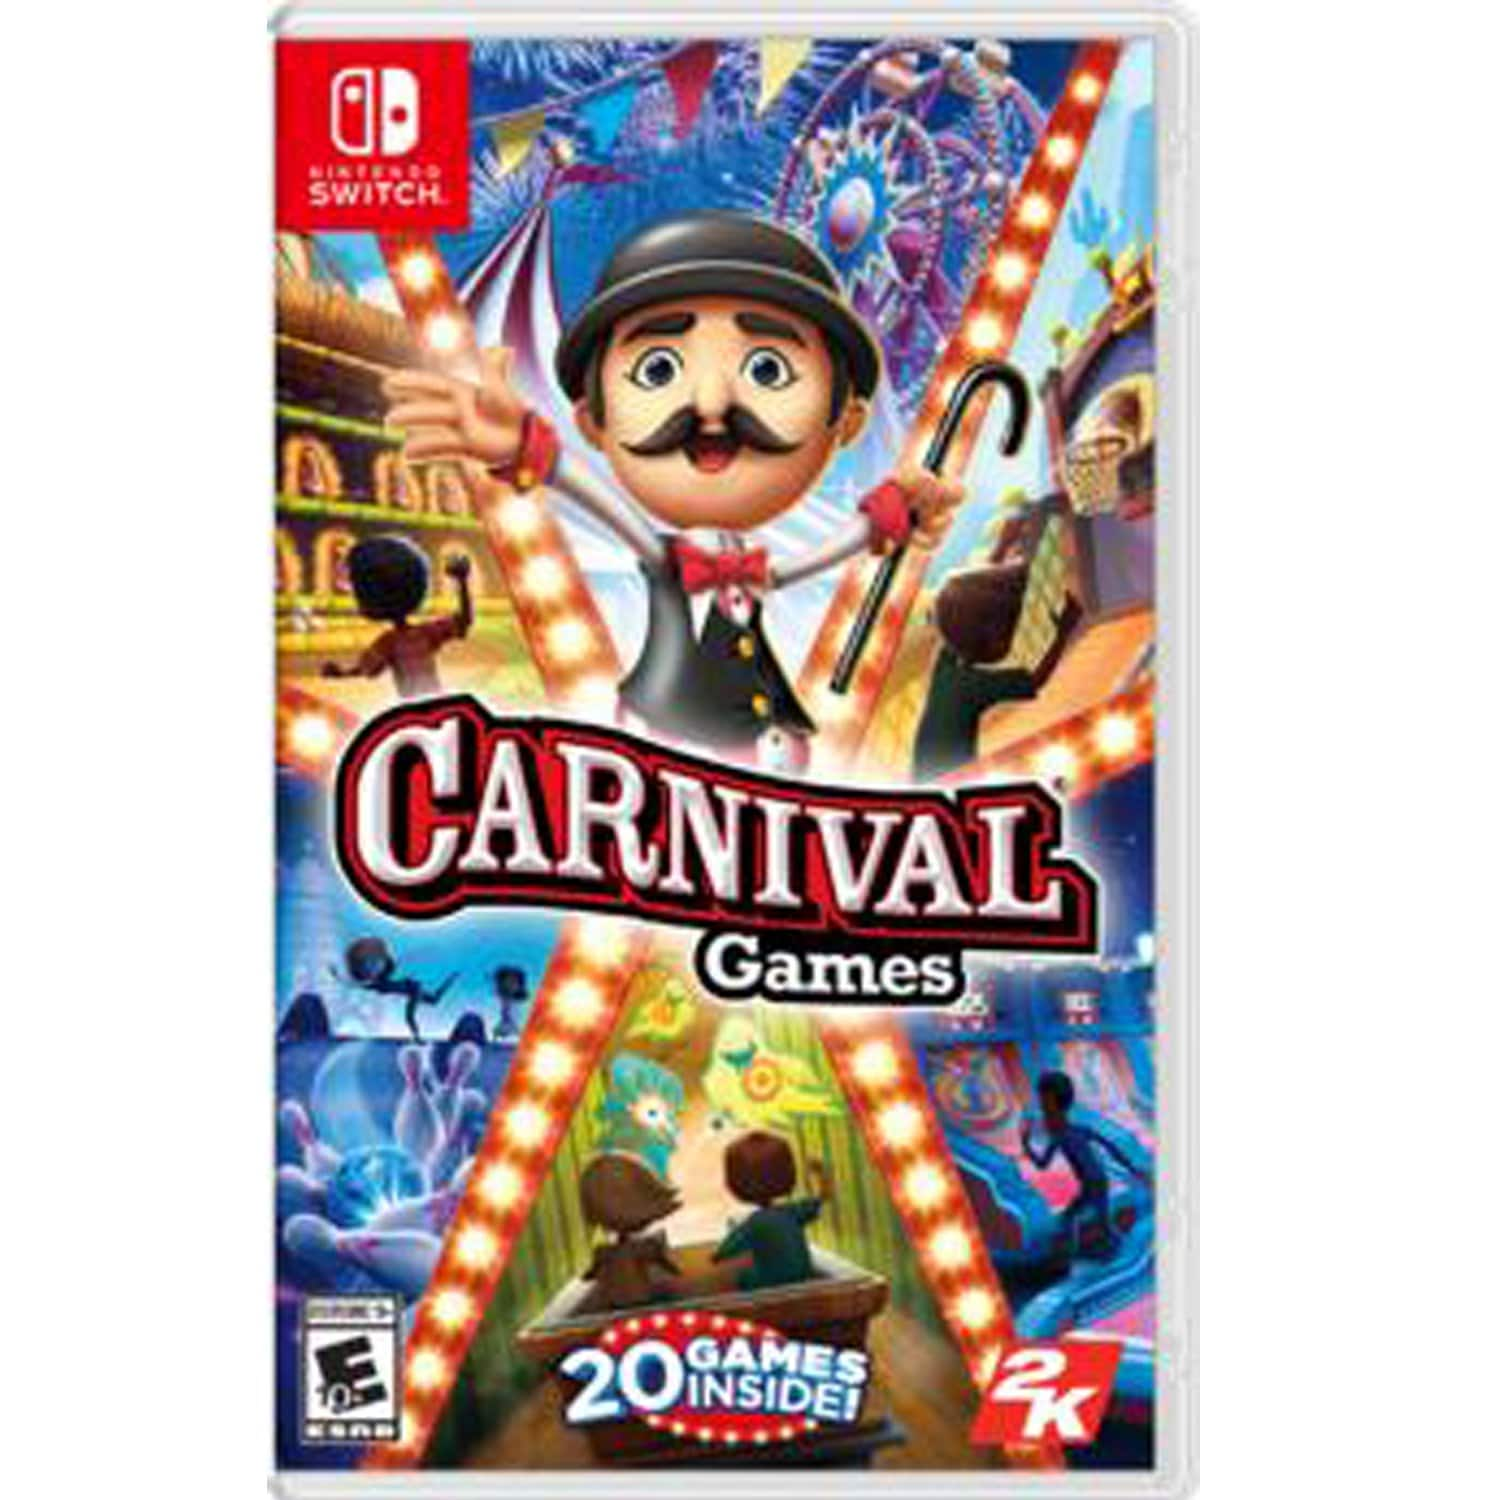 Carnival Games or NBA 2K Playgrounds 2 (Nintendo Switch) - Gamestop Used $9 or New $10